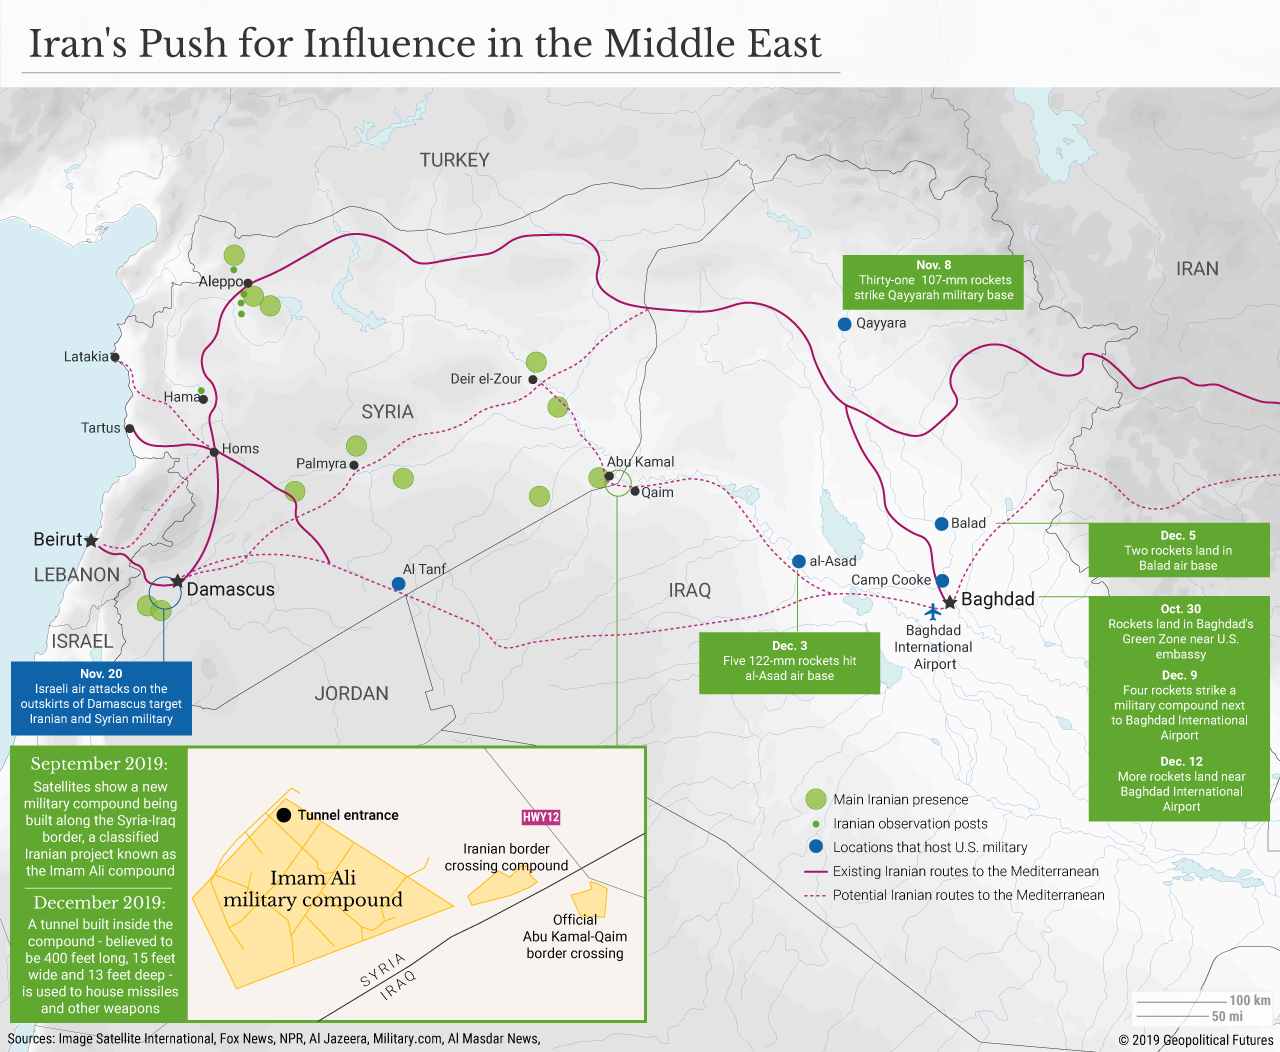 Iran's Push for Influence in the Middle East